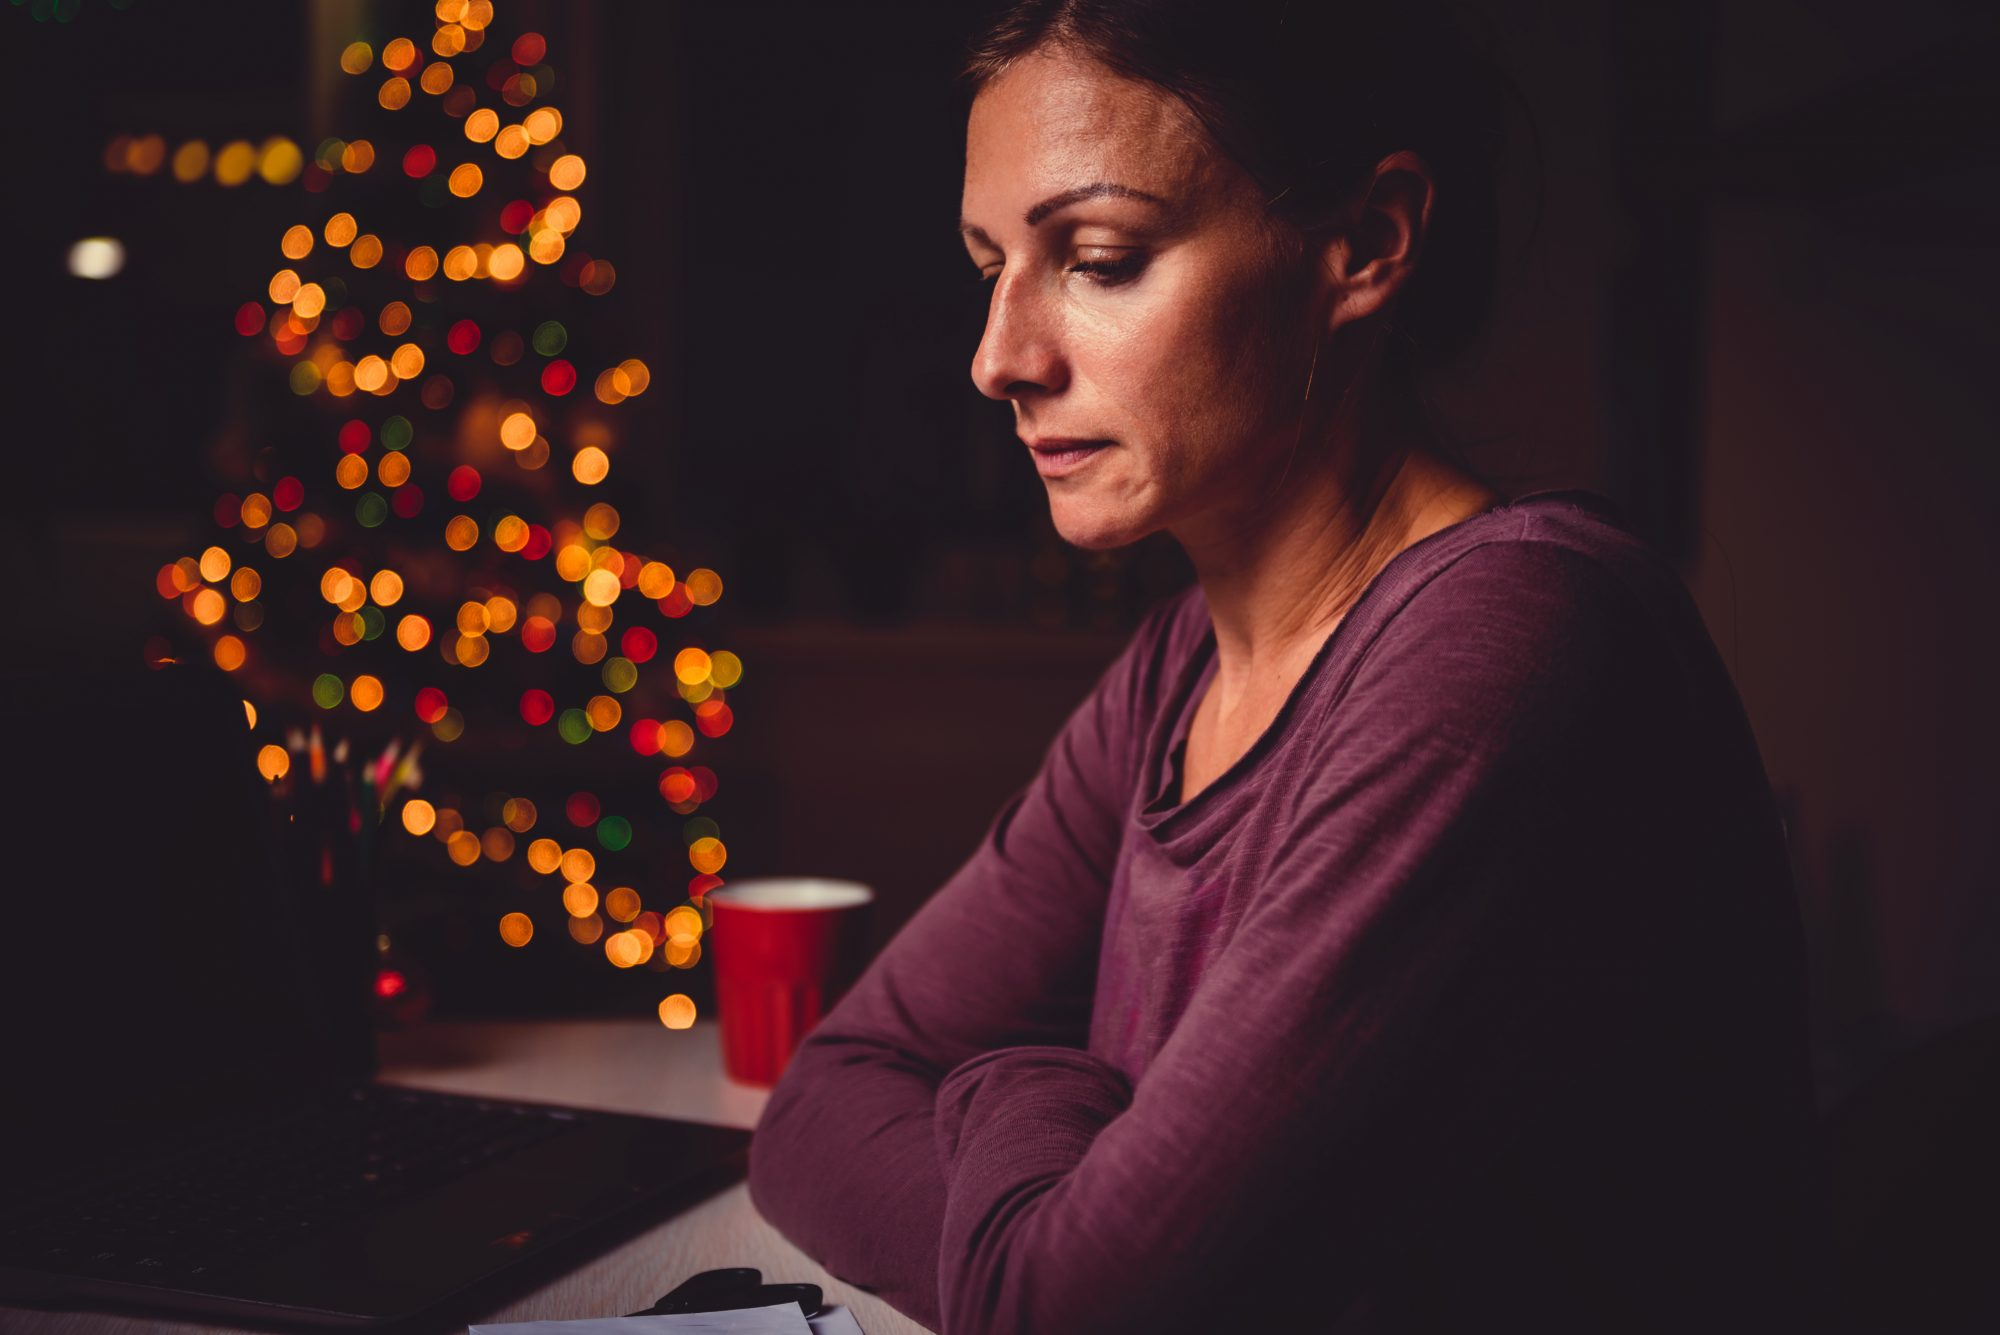 9 Signs You're Headed for a Holiday Meltdown